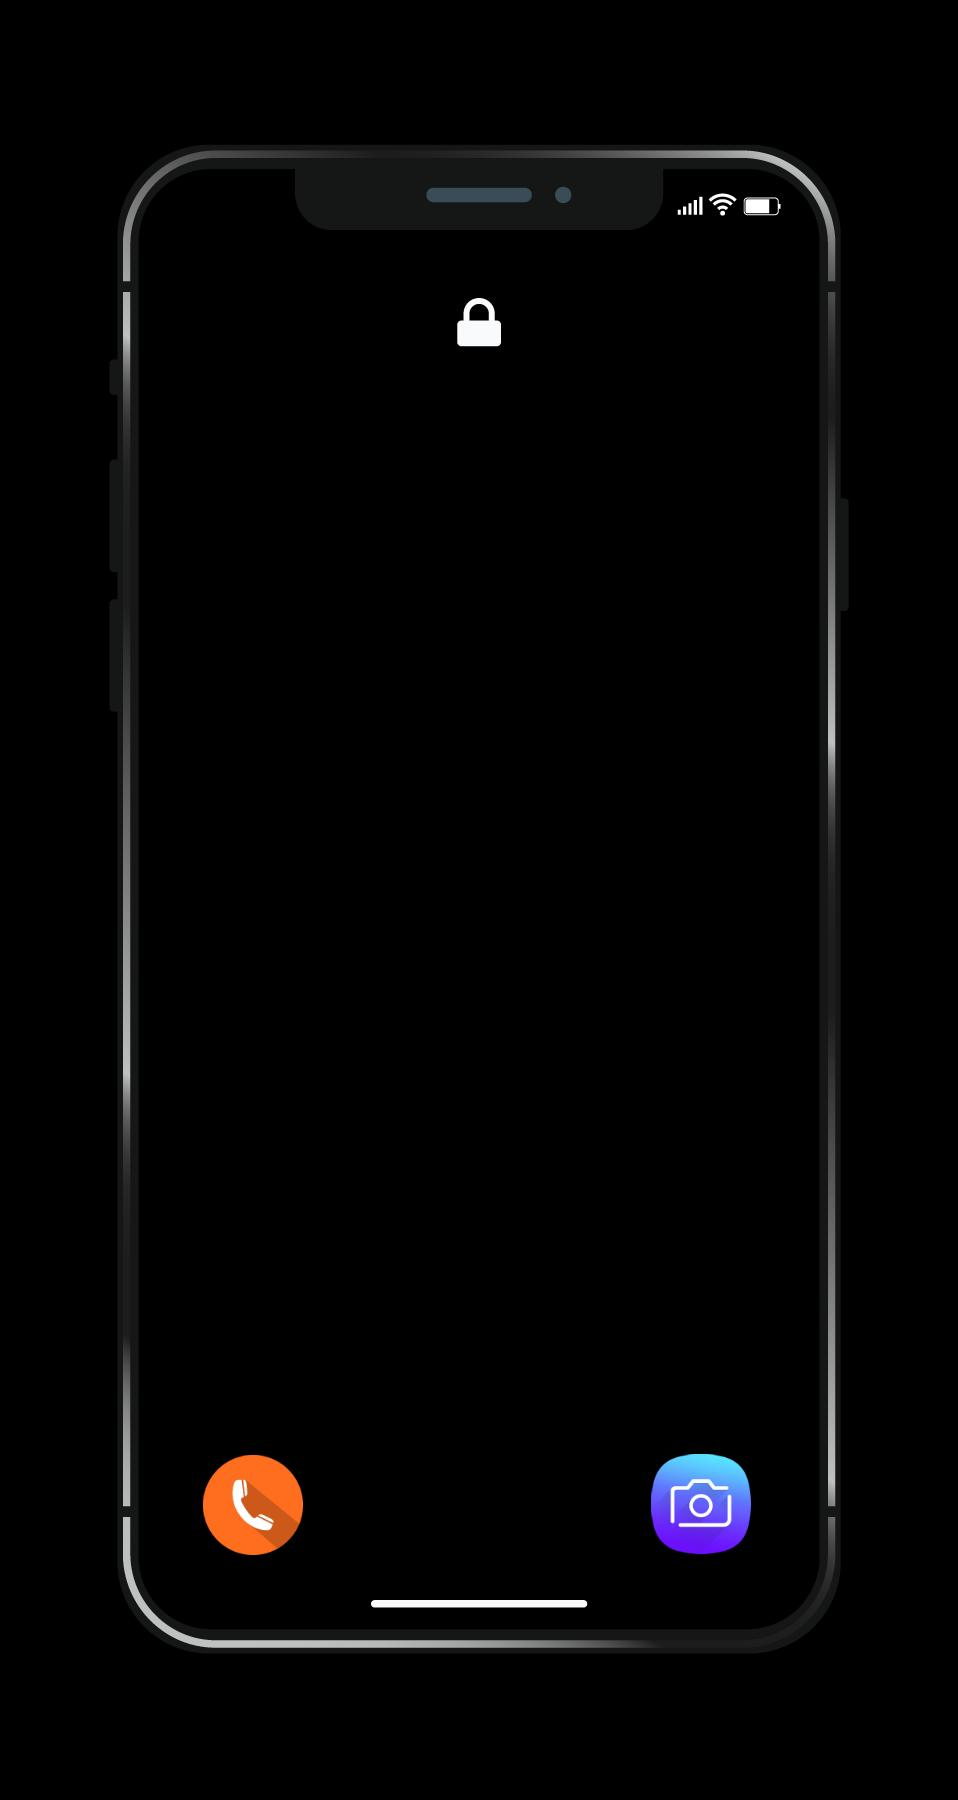 Pure Black Color Wallpaper Hd 4k For Android Apk